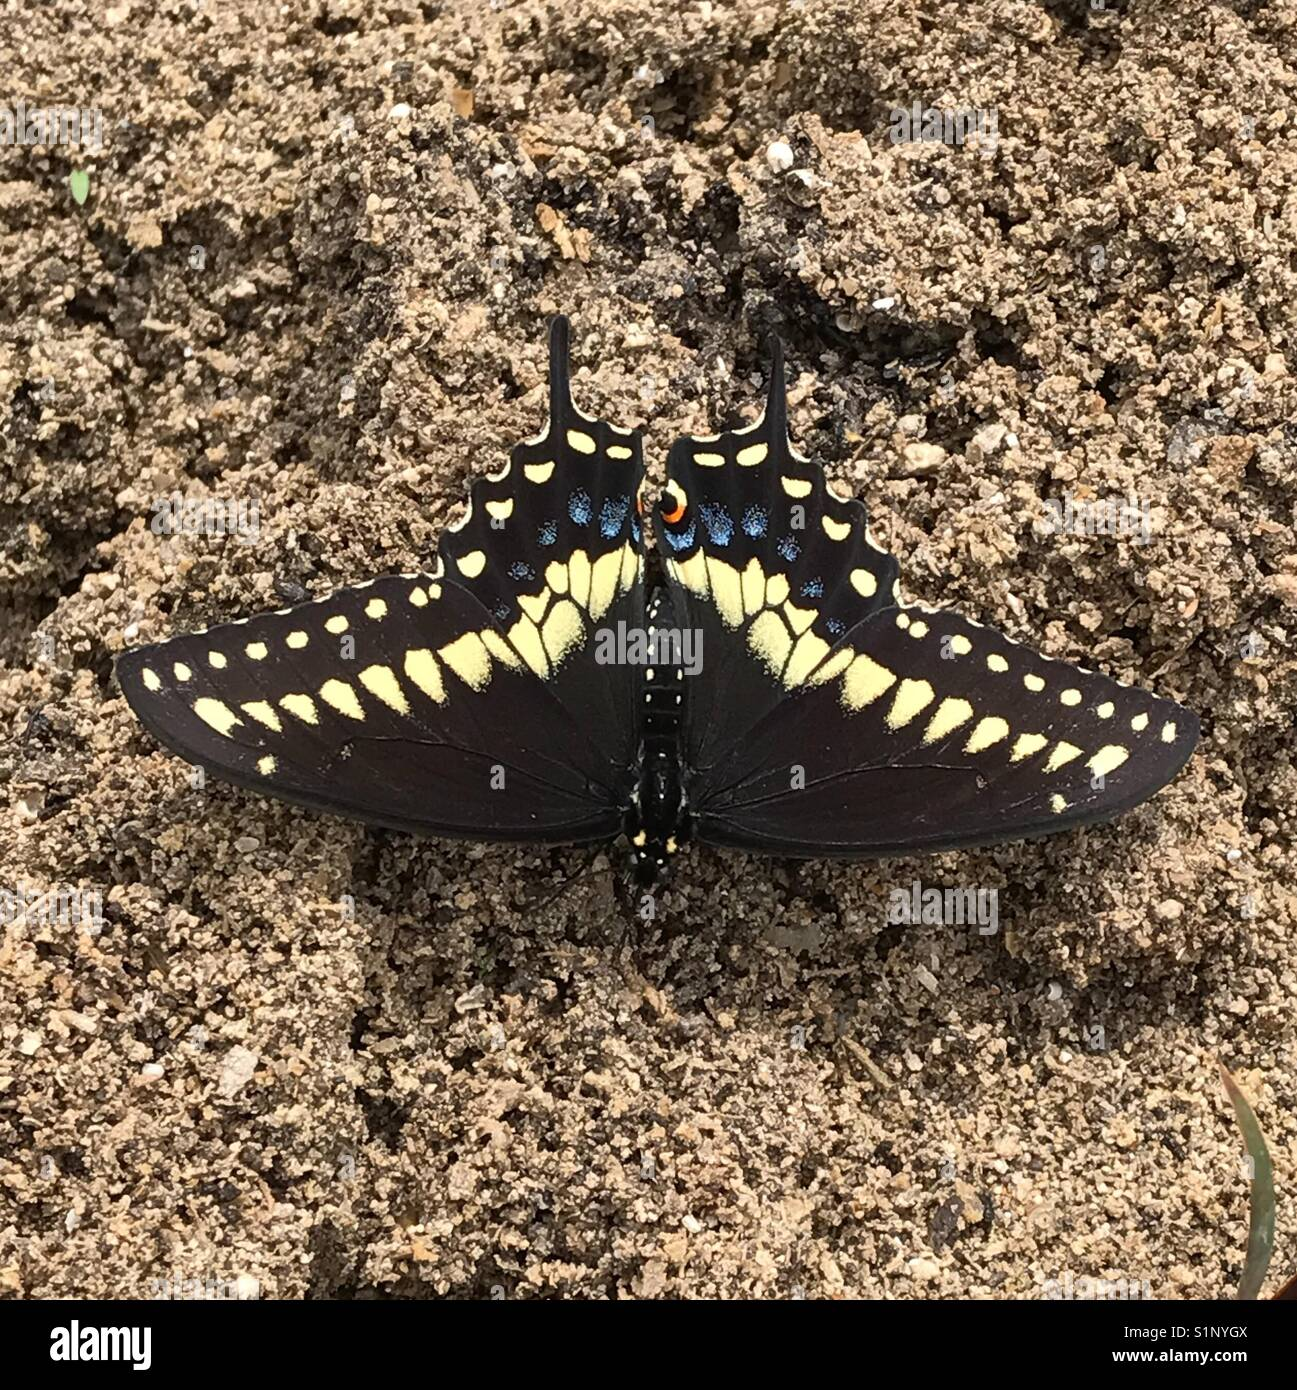 Black And Tan Butterfly Stock Photos & Black And Tan Butterfly Stock ...